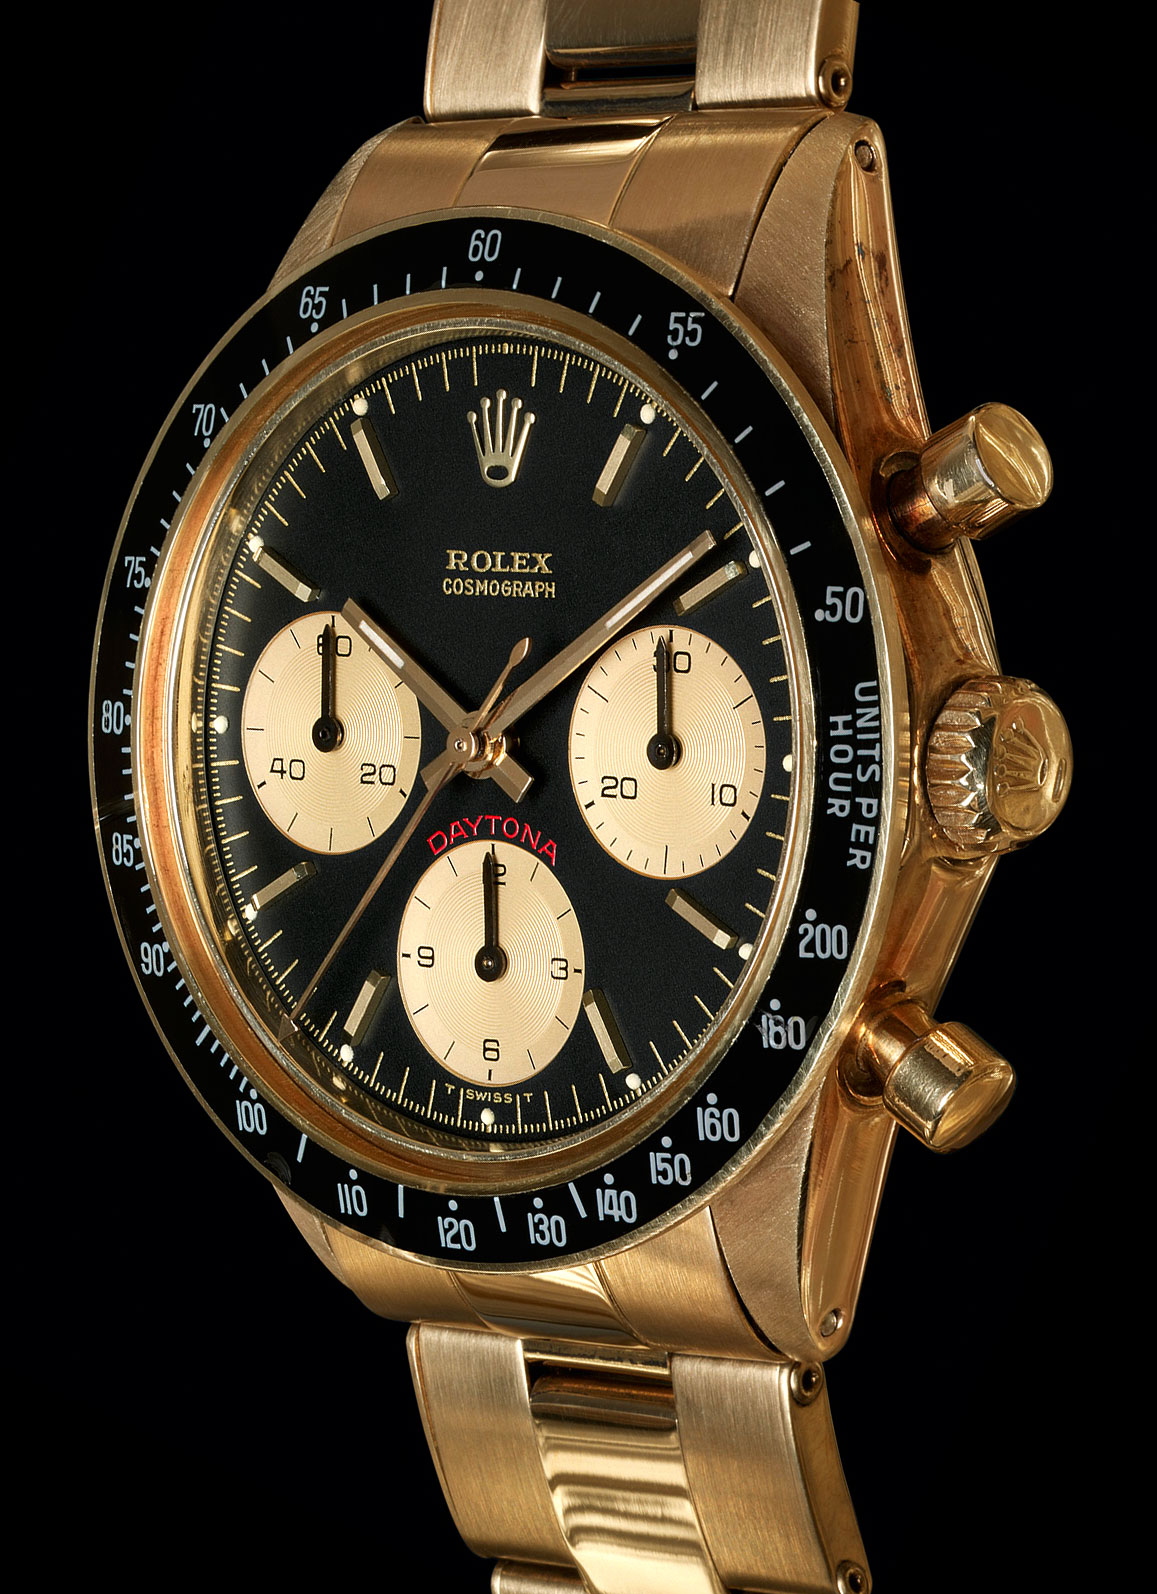 rolex watch daytona gold collection. Black Bedroom Furniture Sets. Home Design Ideas